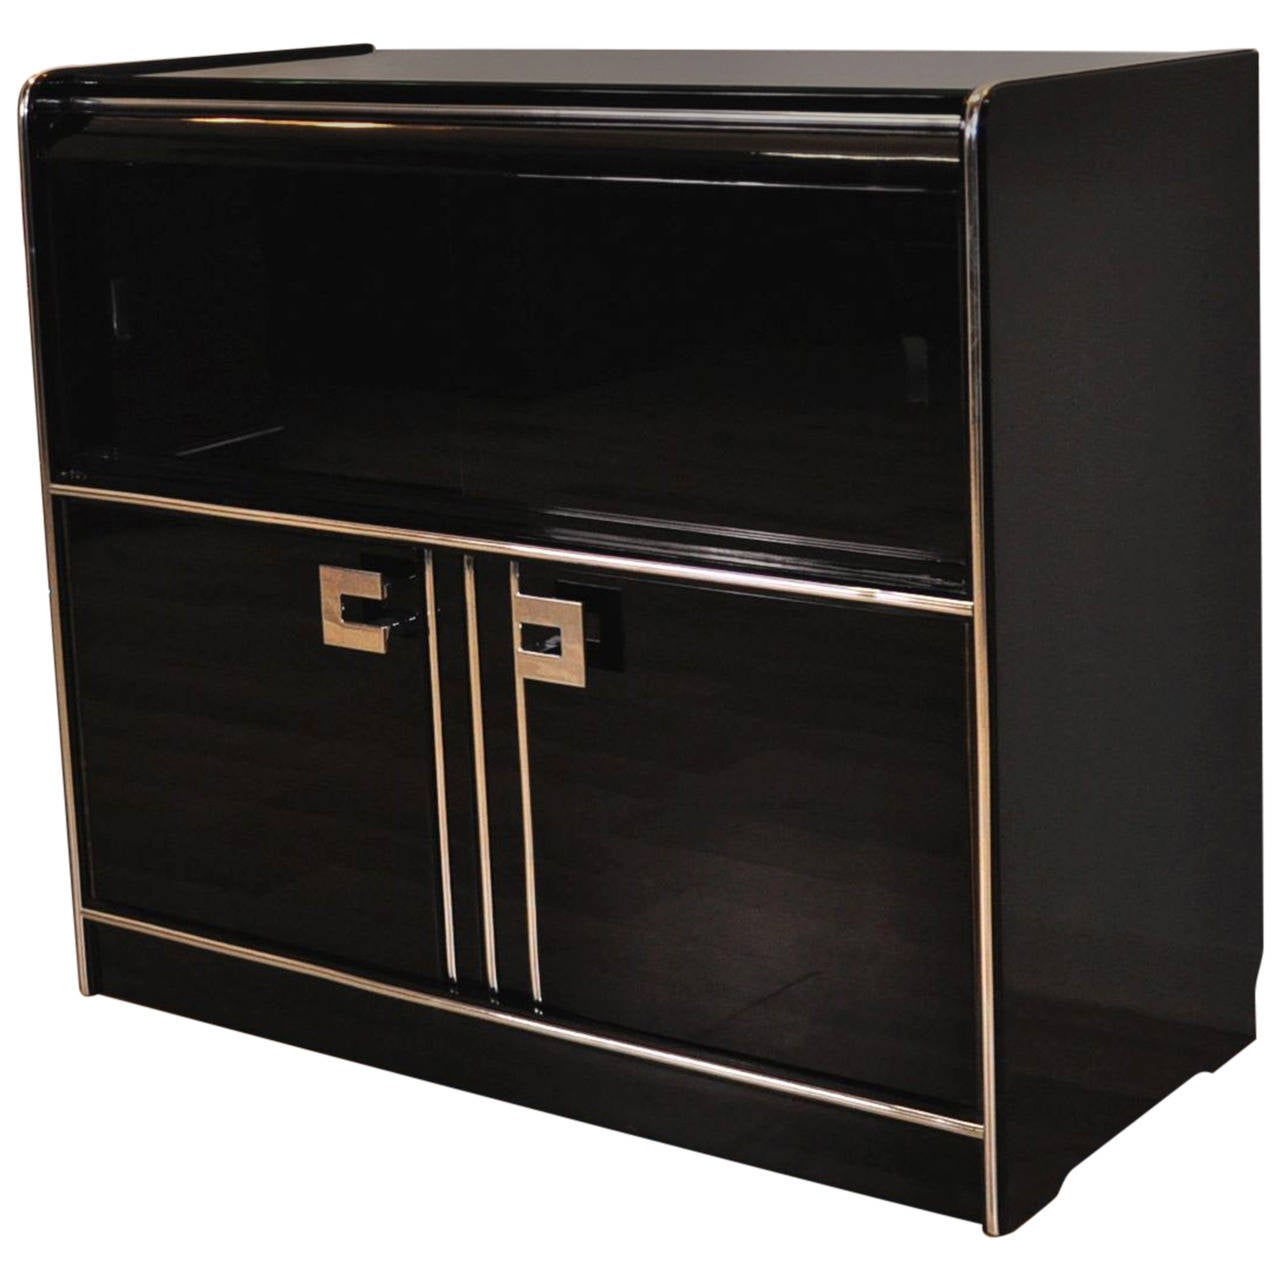 Small art deco sideboard with sliding glass doors at 1stdibs for Sliding glass doors germany